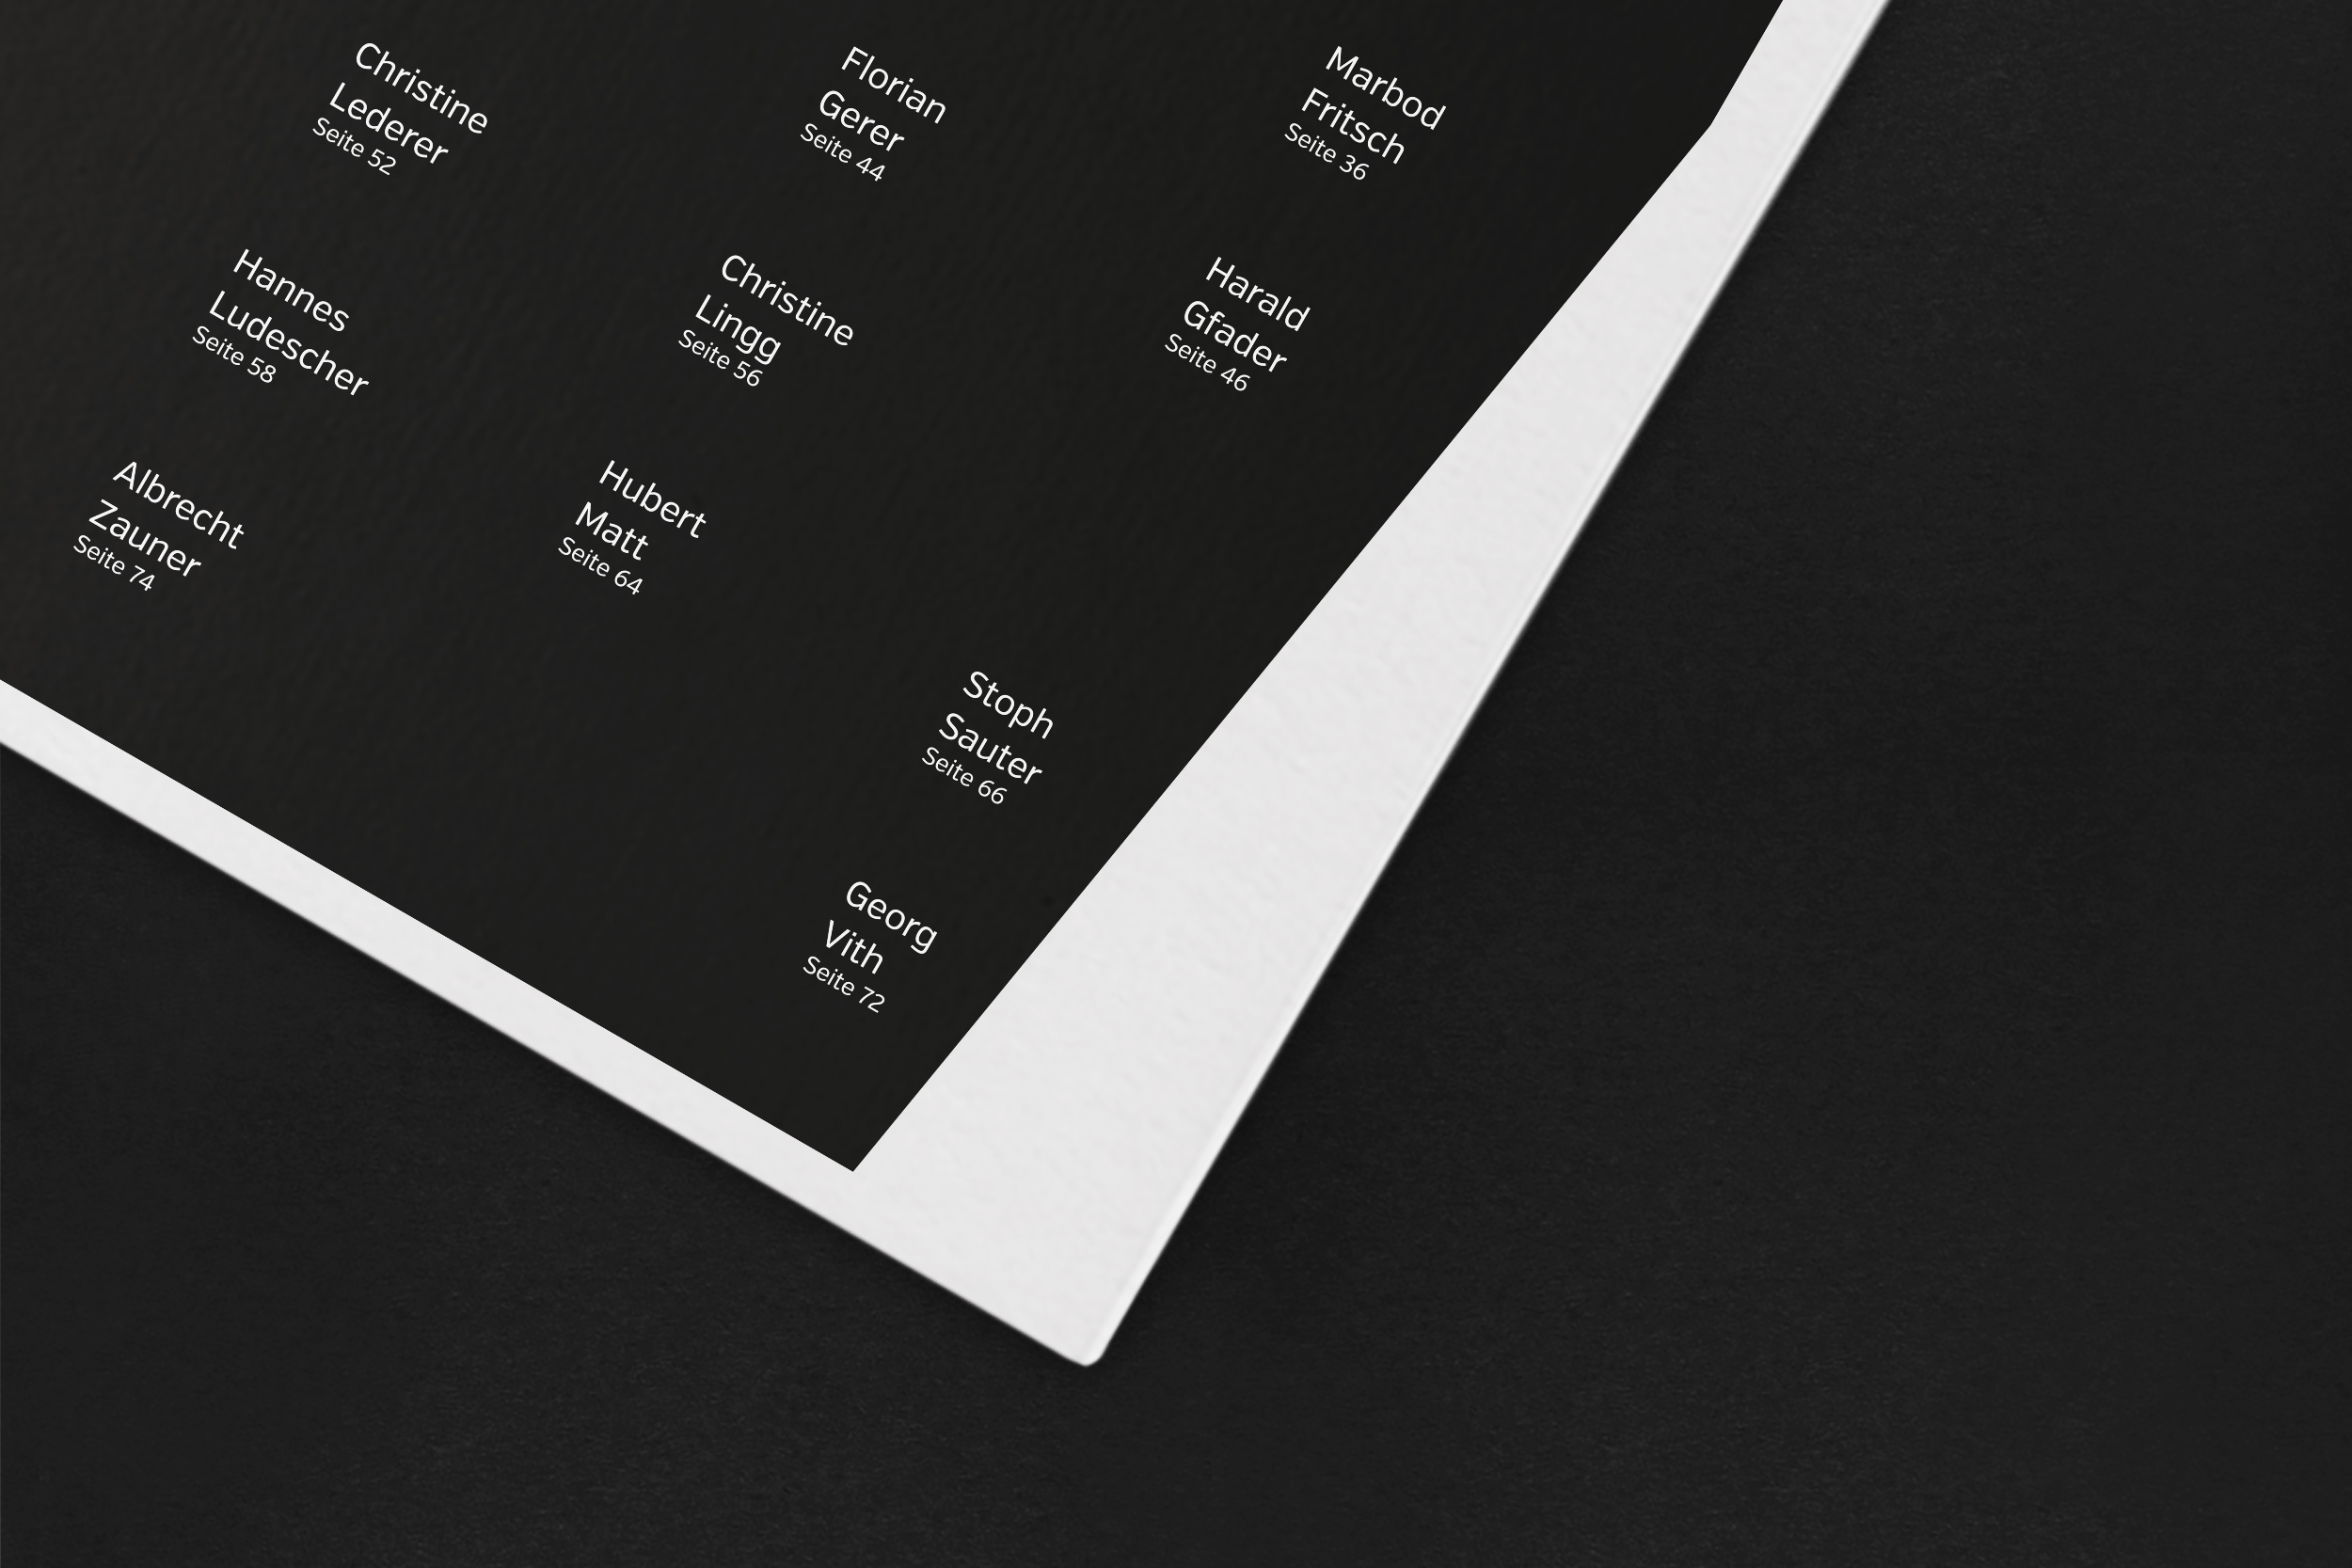 Atelierbuch_Mockup_Cover_Detail_V2